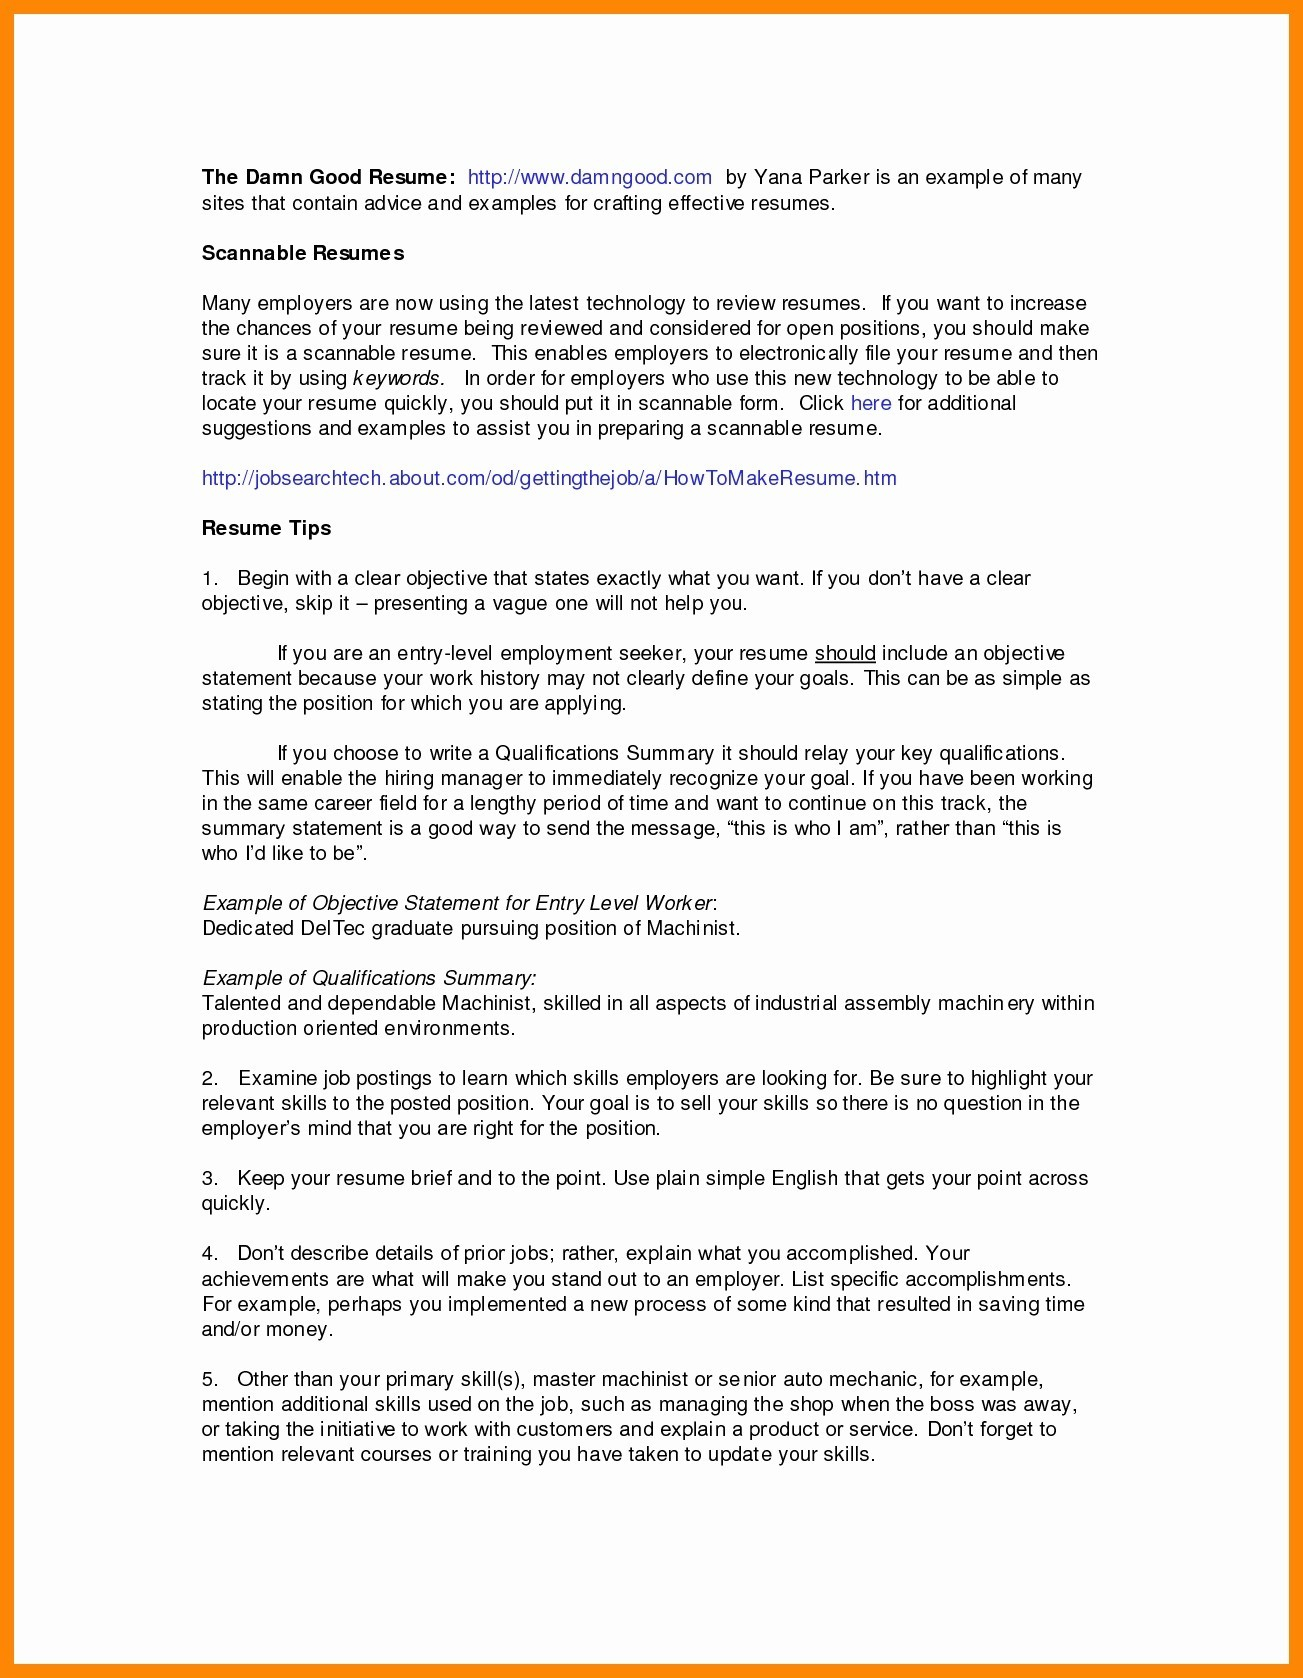 Home Health Aide Skills Resume - Scrum Master Resume or How to Make A Resume for Job Application and